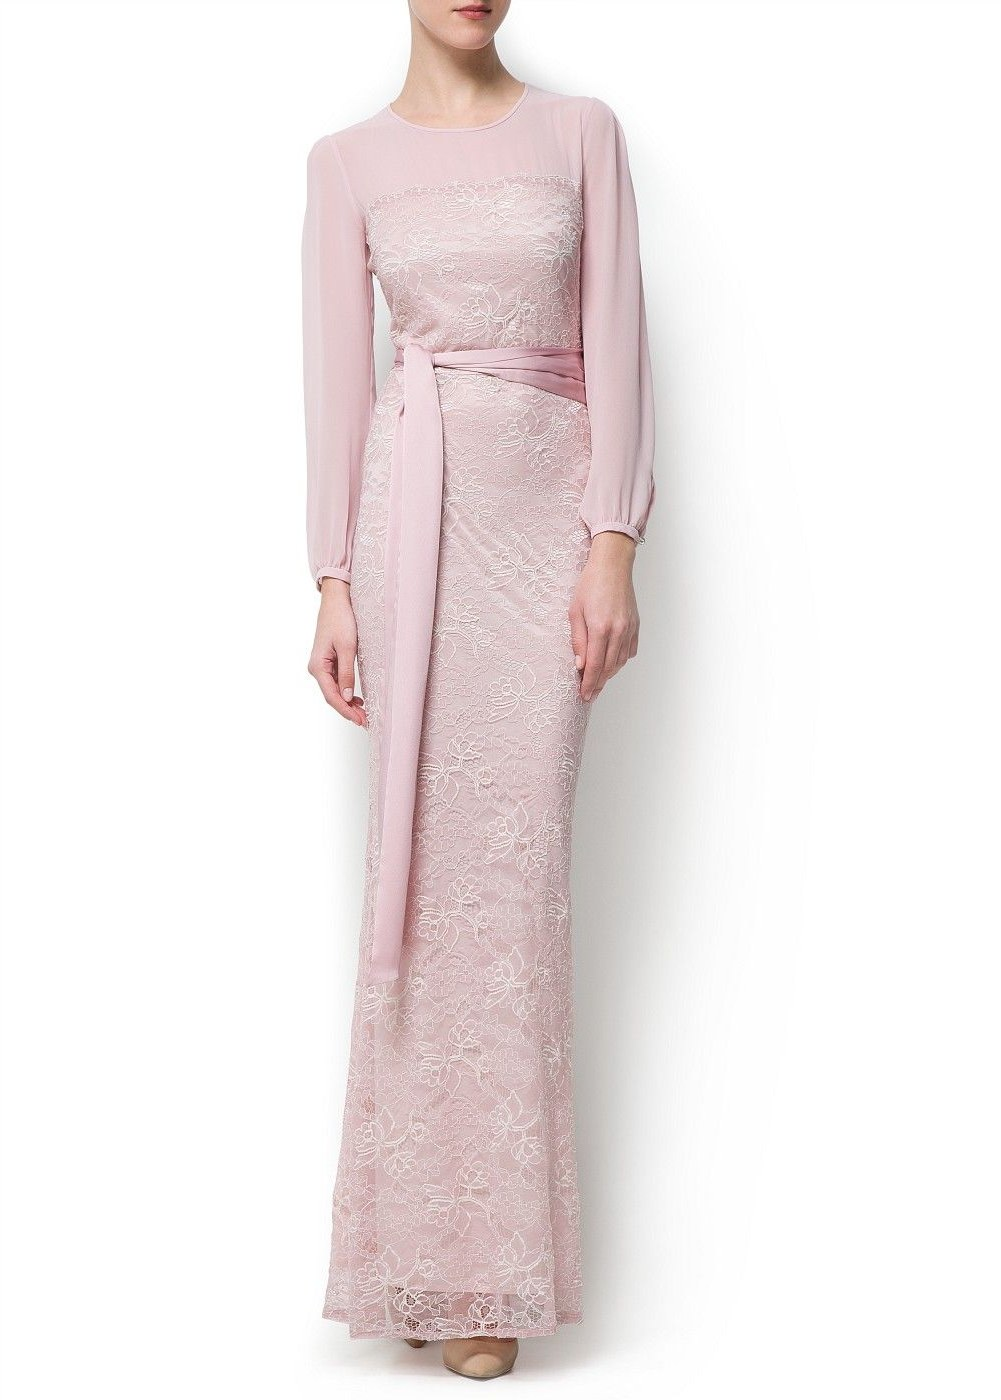 Bentuk Bridesmaid Hijab Pink E6d5 Lace Gown Woman In 2019